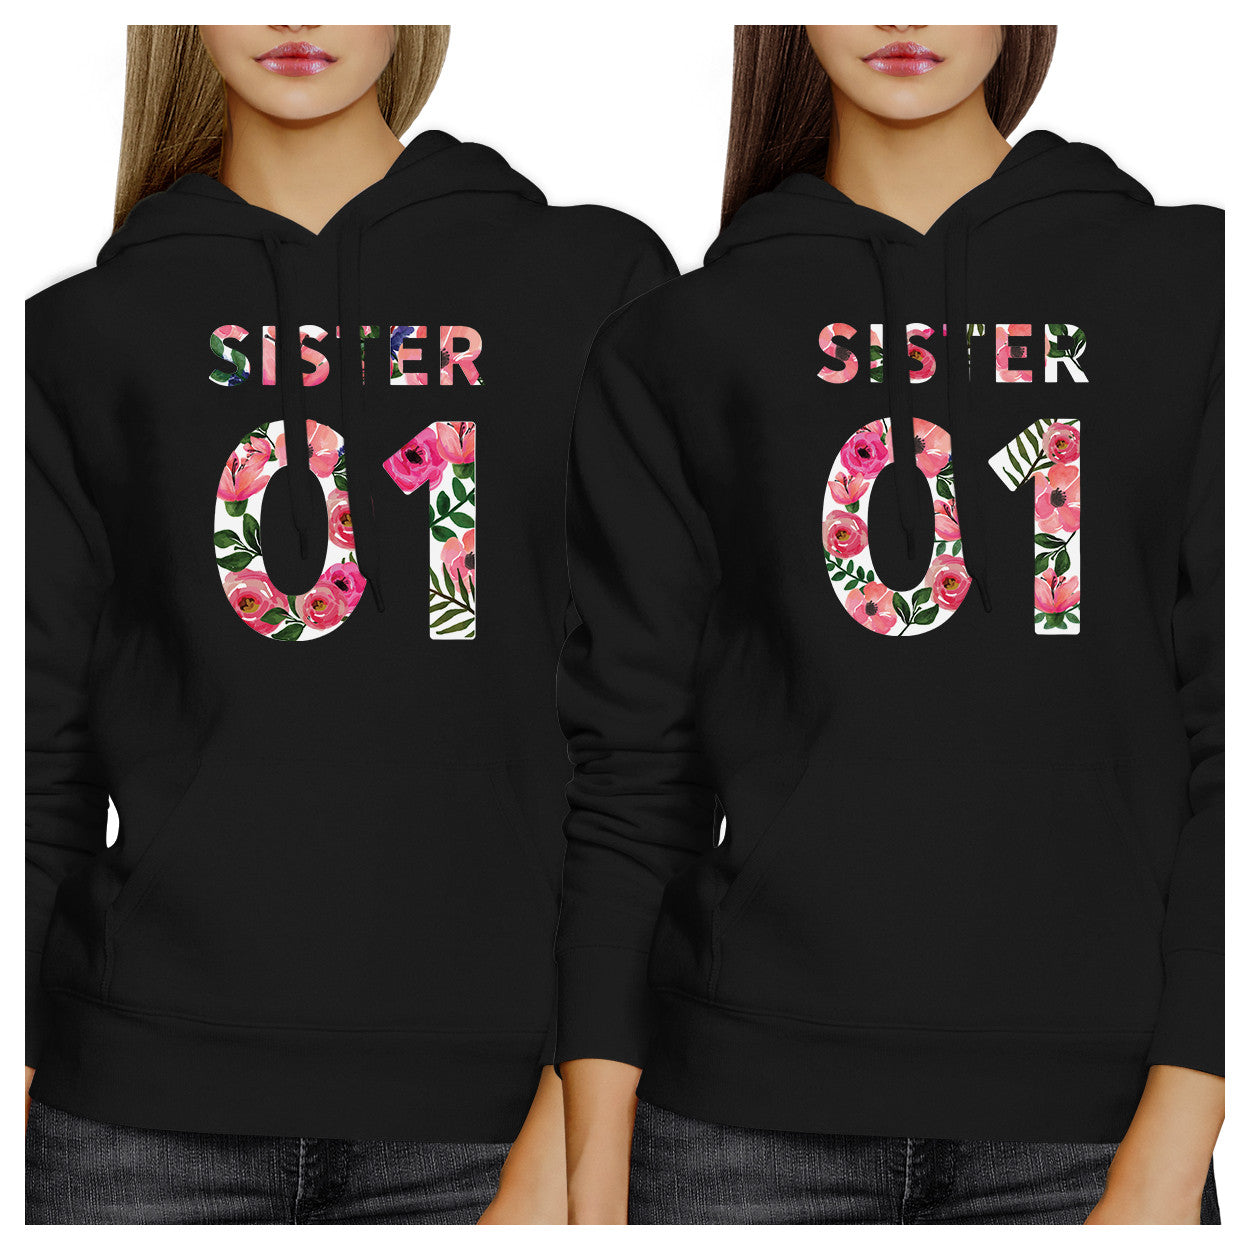 c27de39f1516 Sister 01 BFF Matching Black Hoodies - 365 IN LOVE - Matching Gifts ...